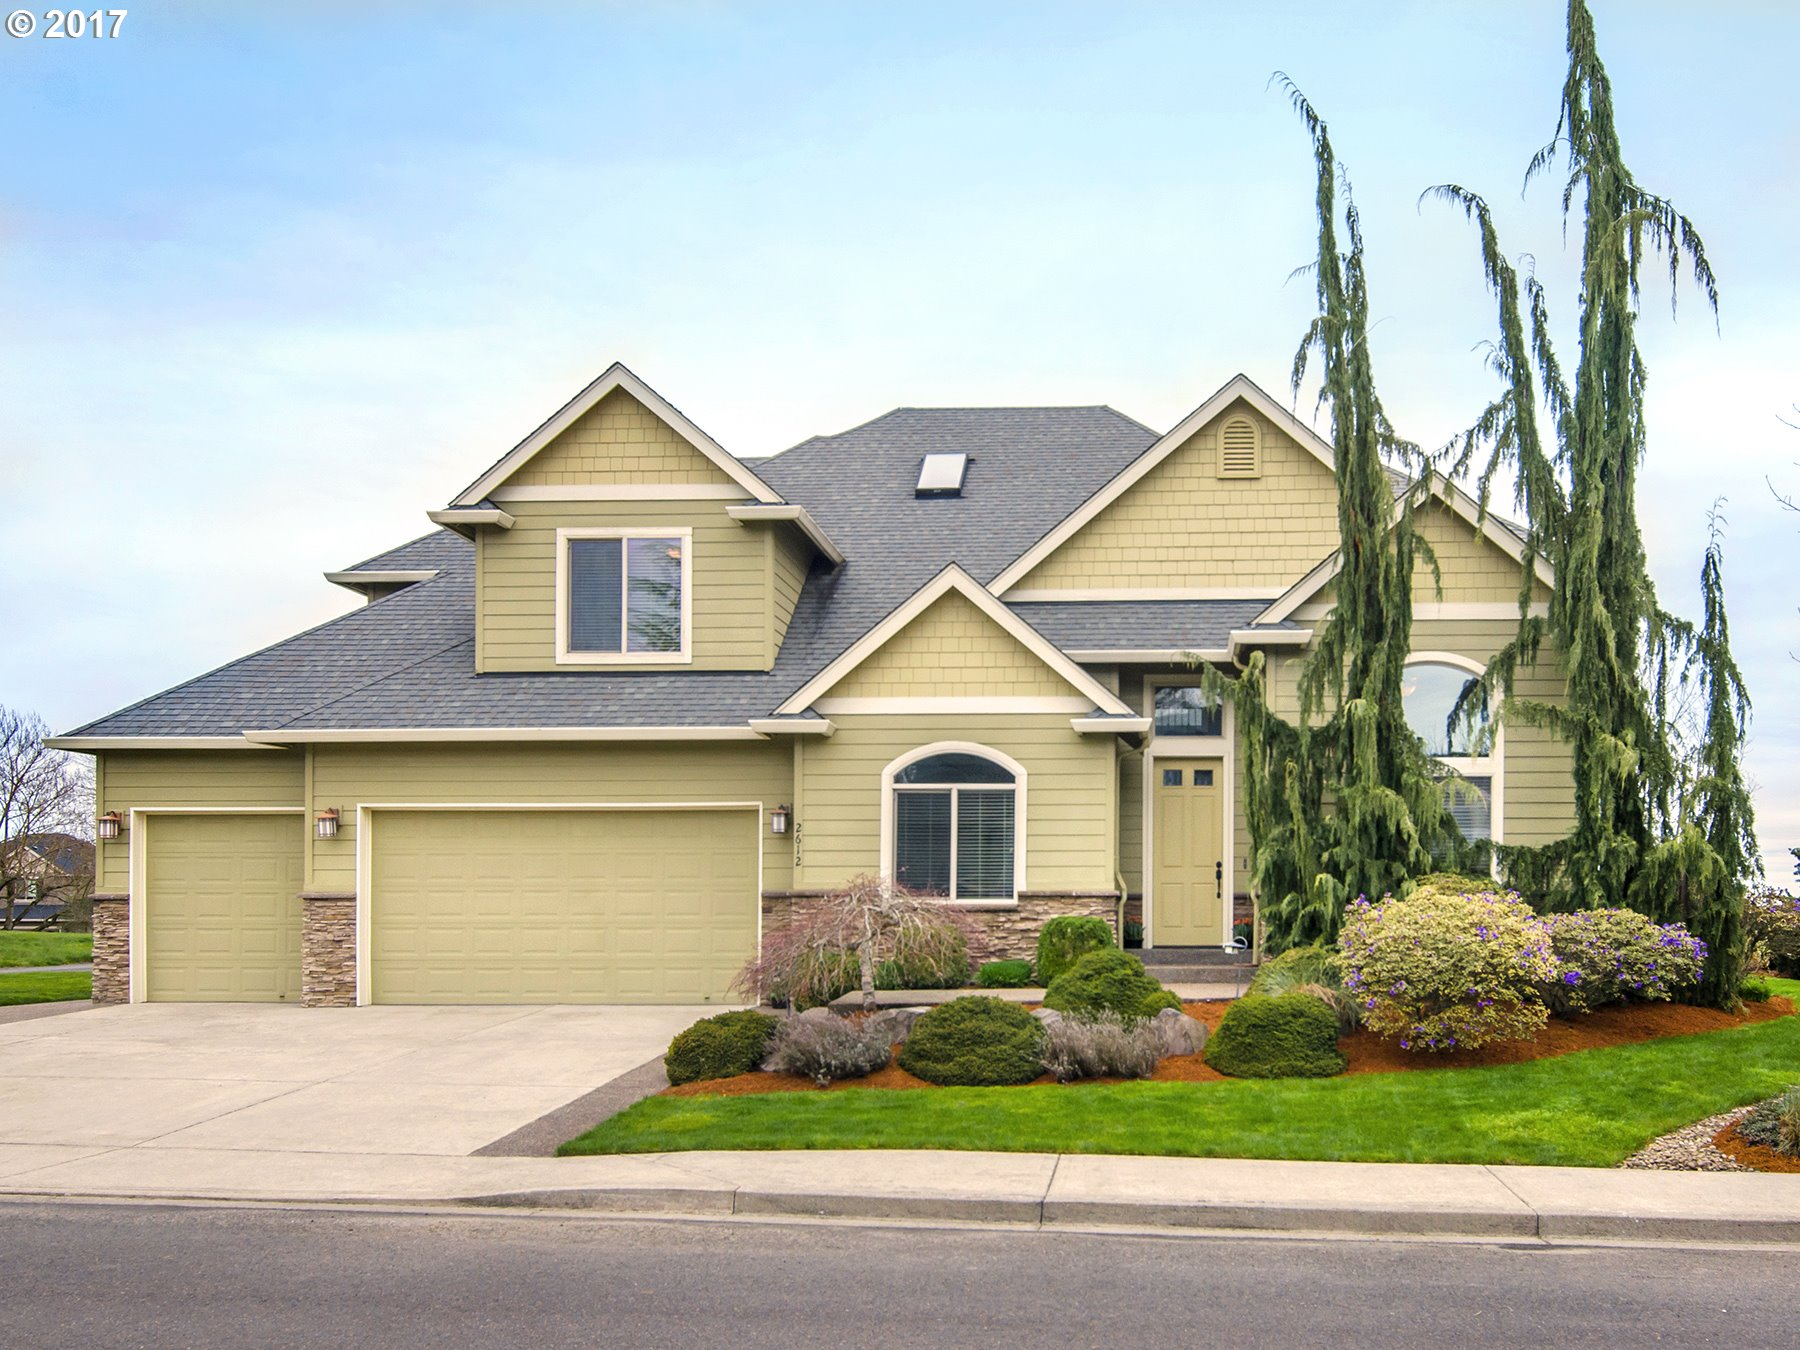 2612 NW 127TH ST Vancouver, WA 98685 - MLS #: 17313483